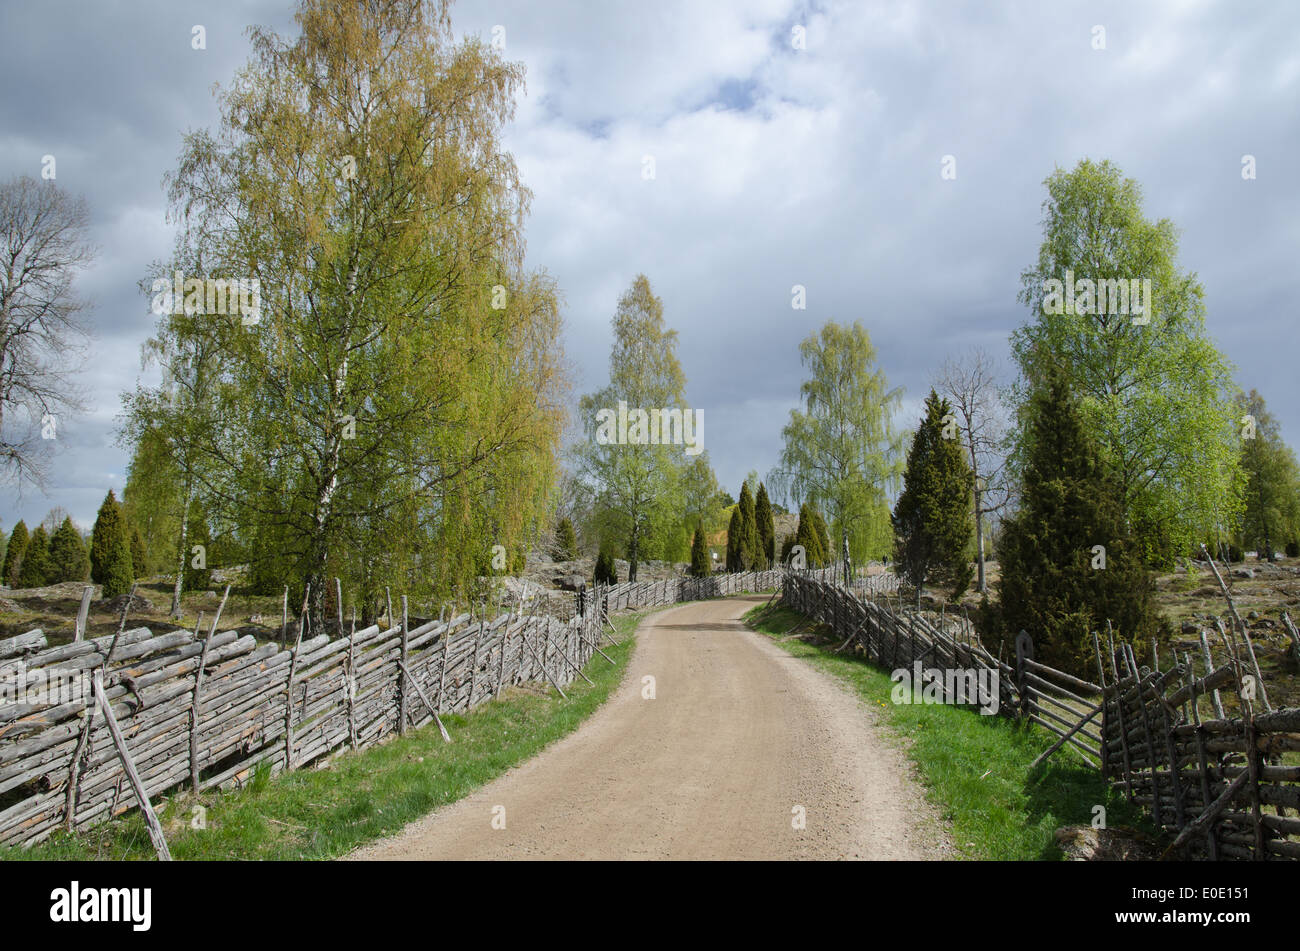 Winding gravel road through an old fashioned landscape with wooden fences - Stock Image